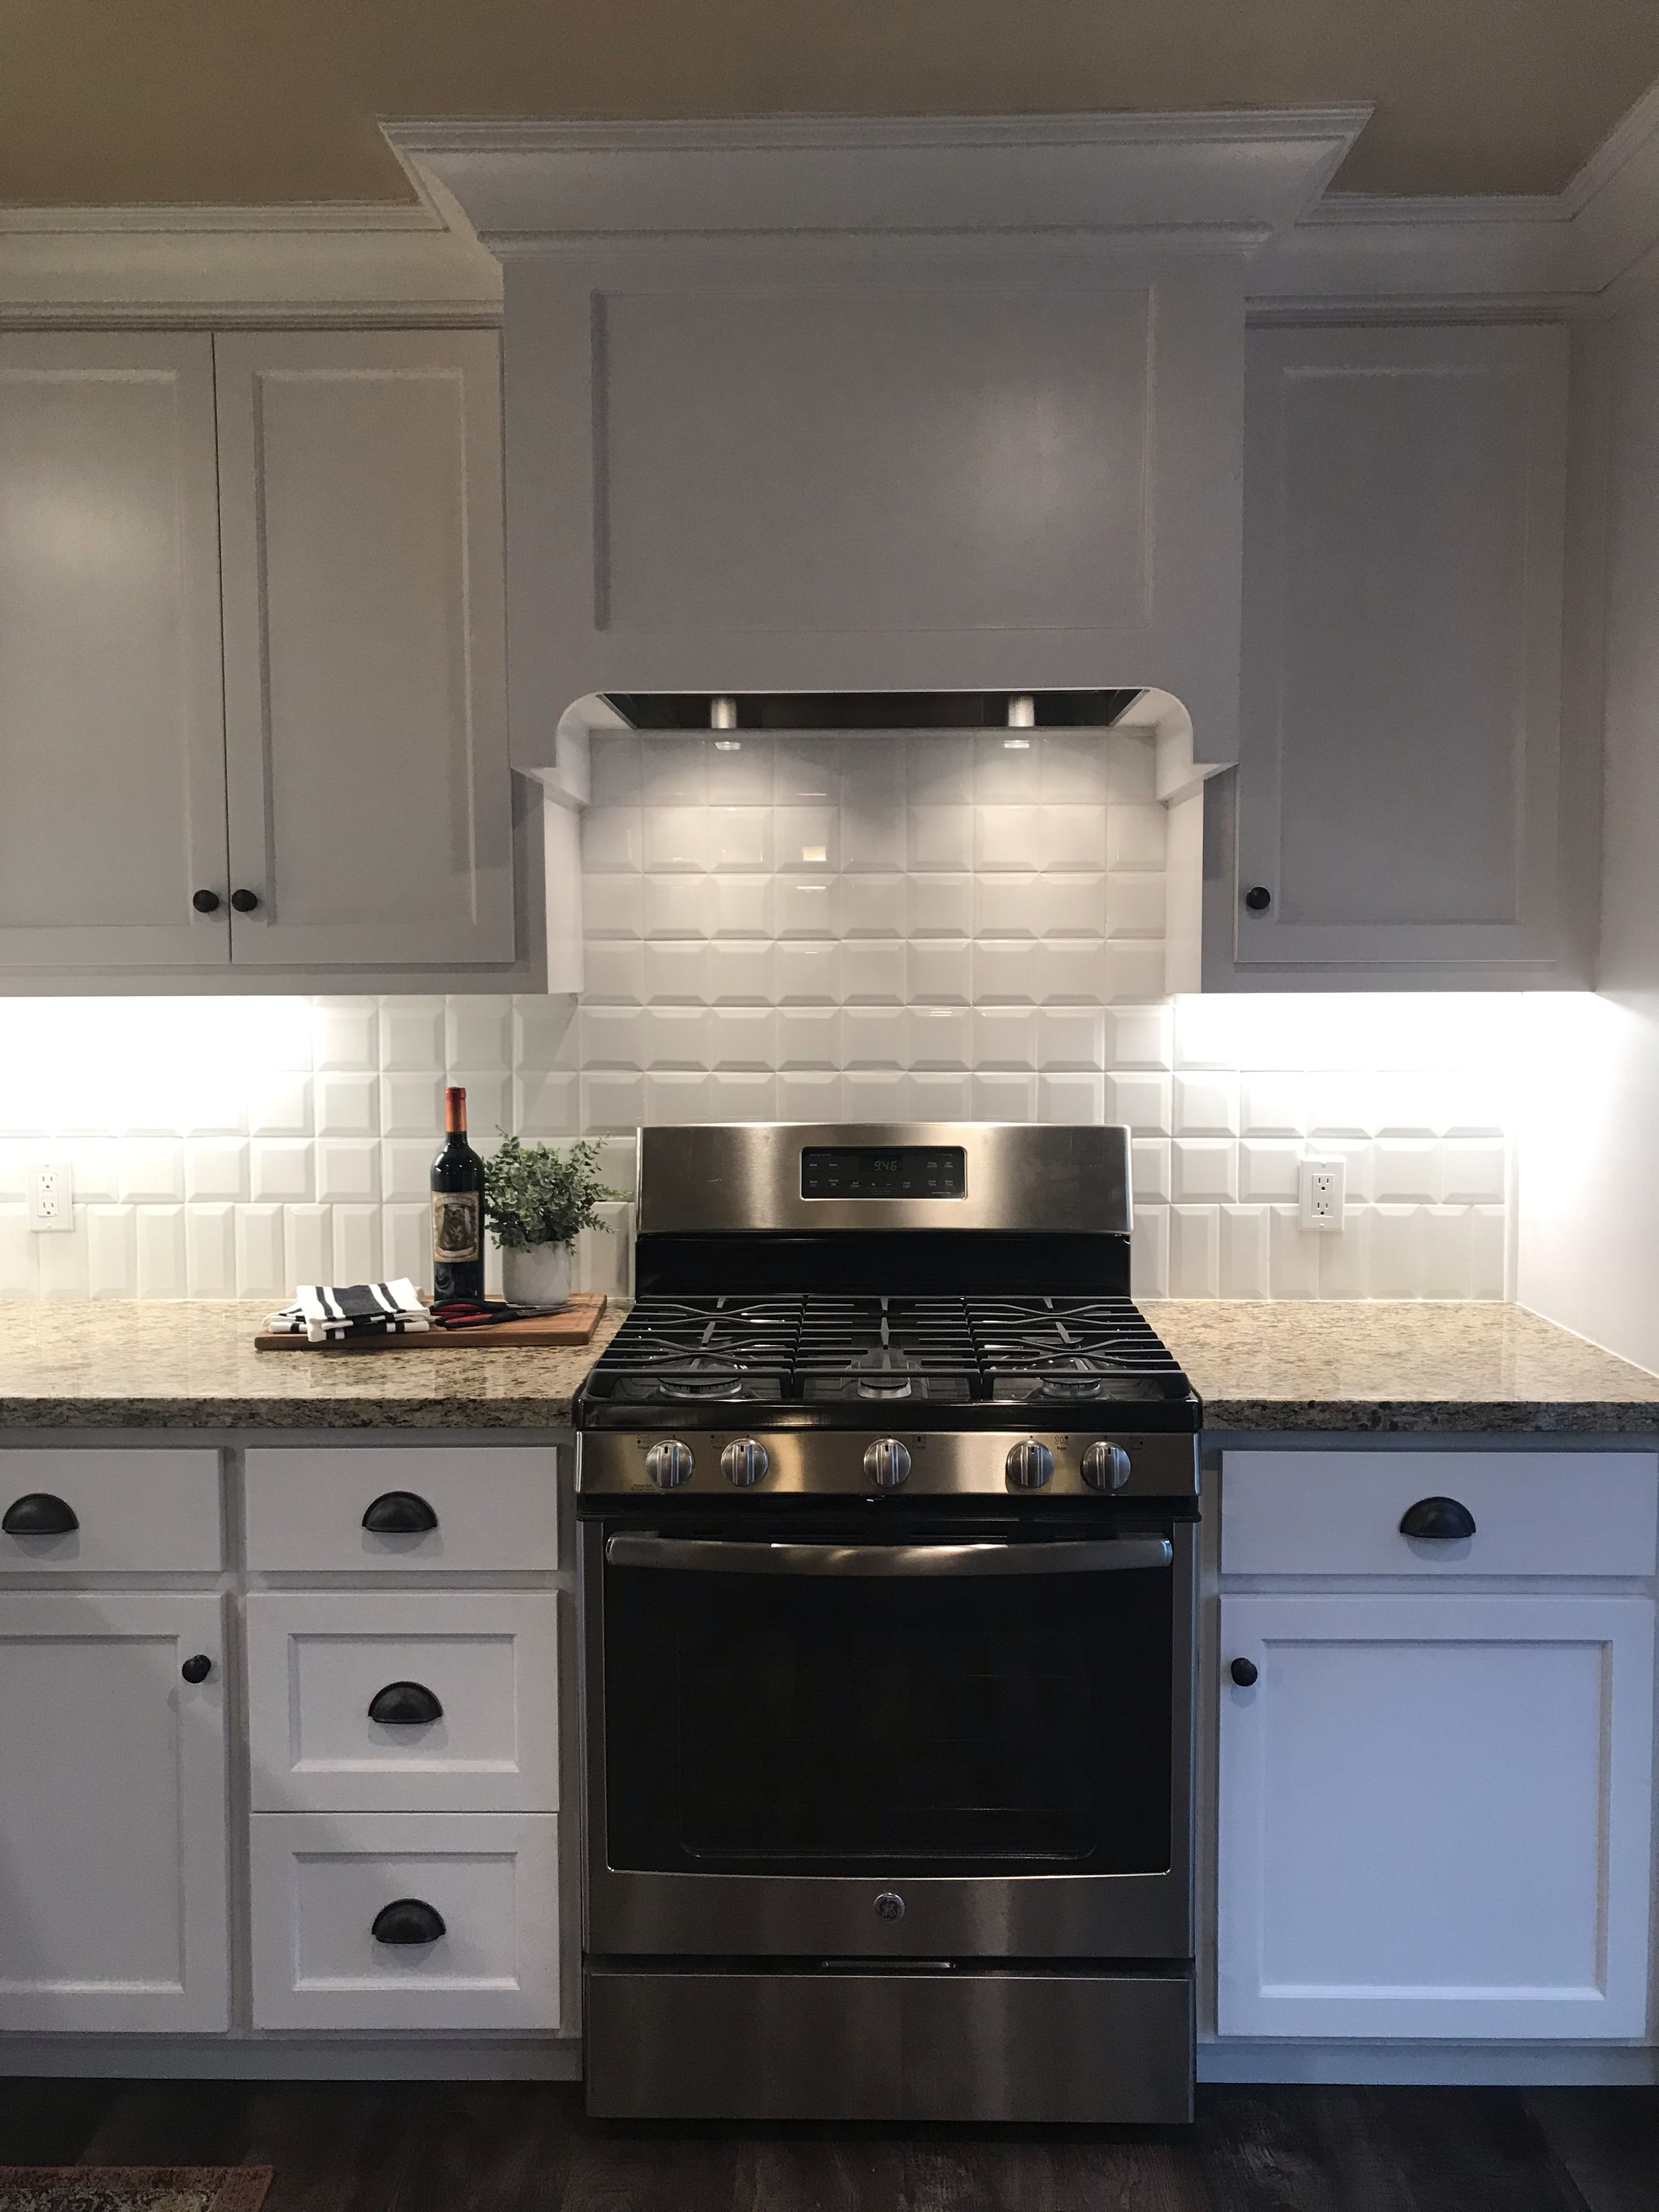 Small White Kitchen By Gabbert Construction Inc Small White Kitchens Kitchen Design Kitchen Remodel